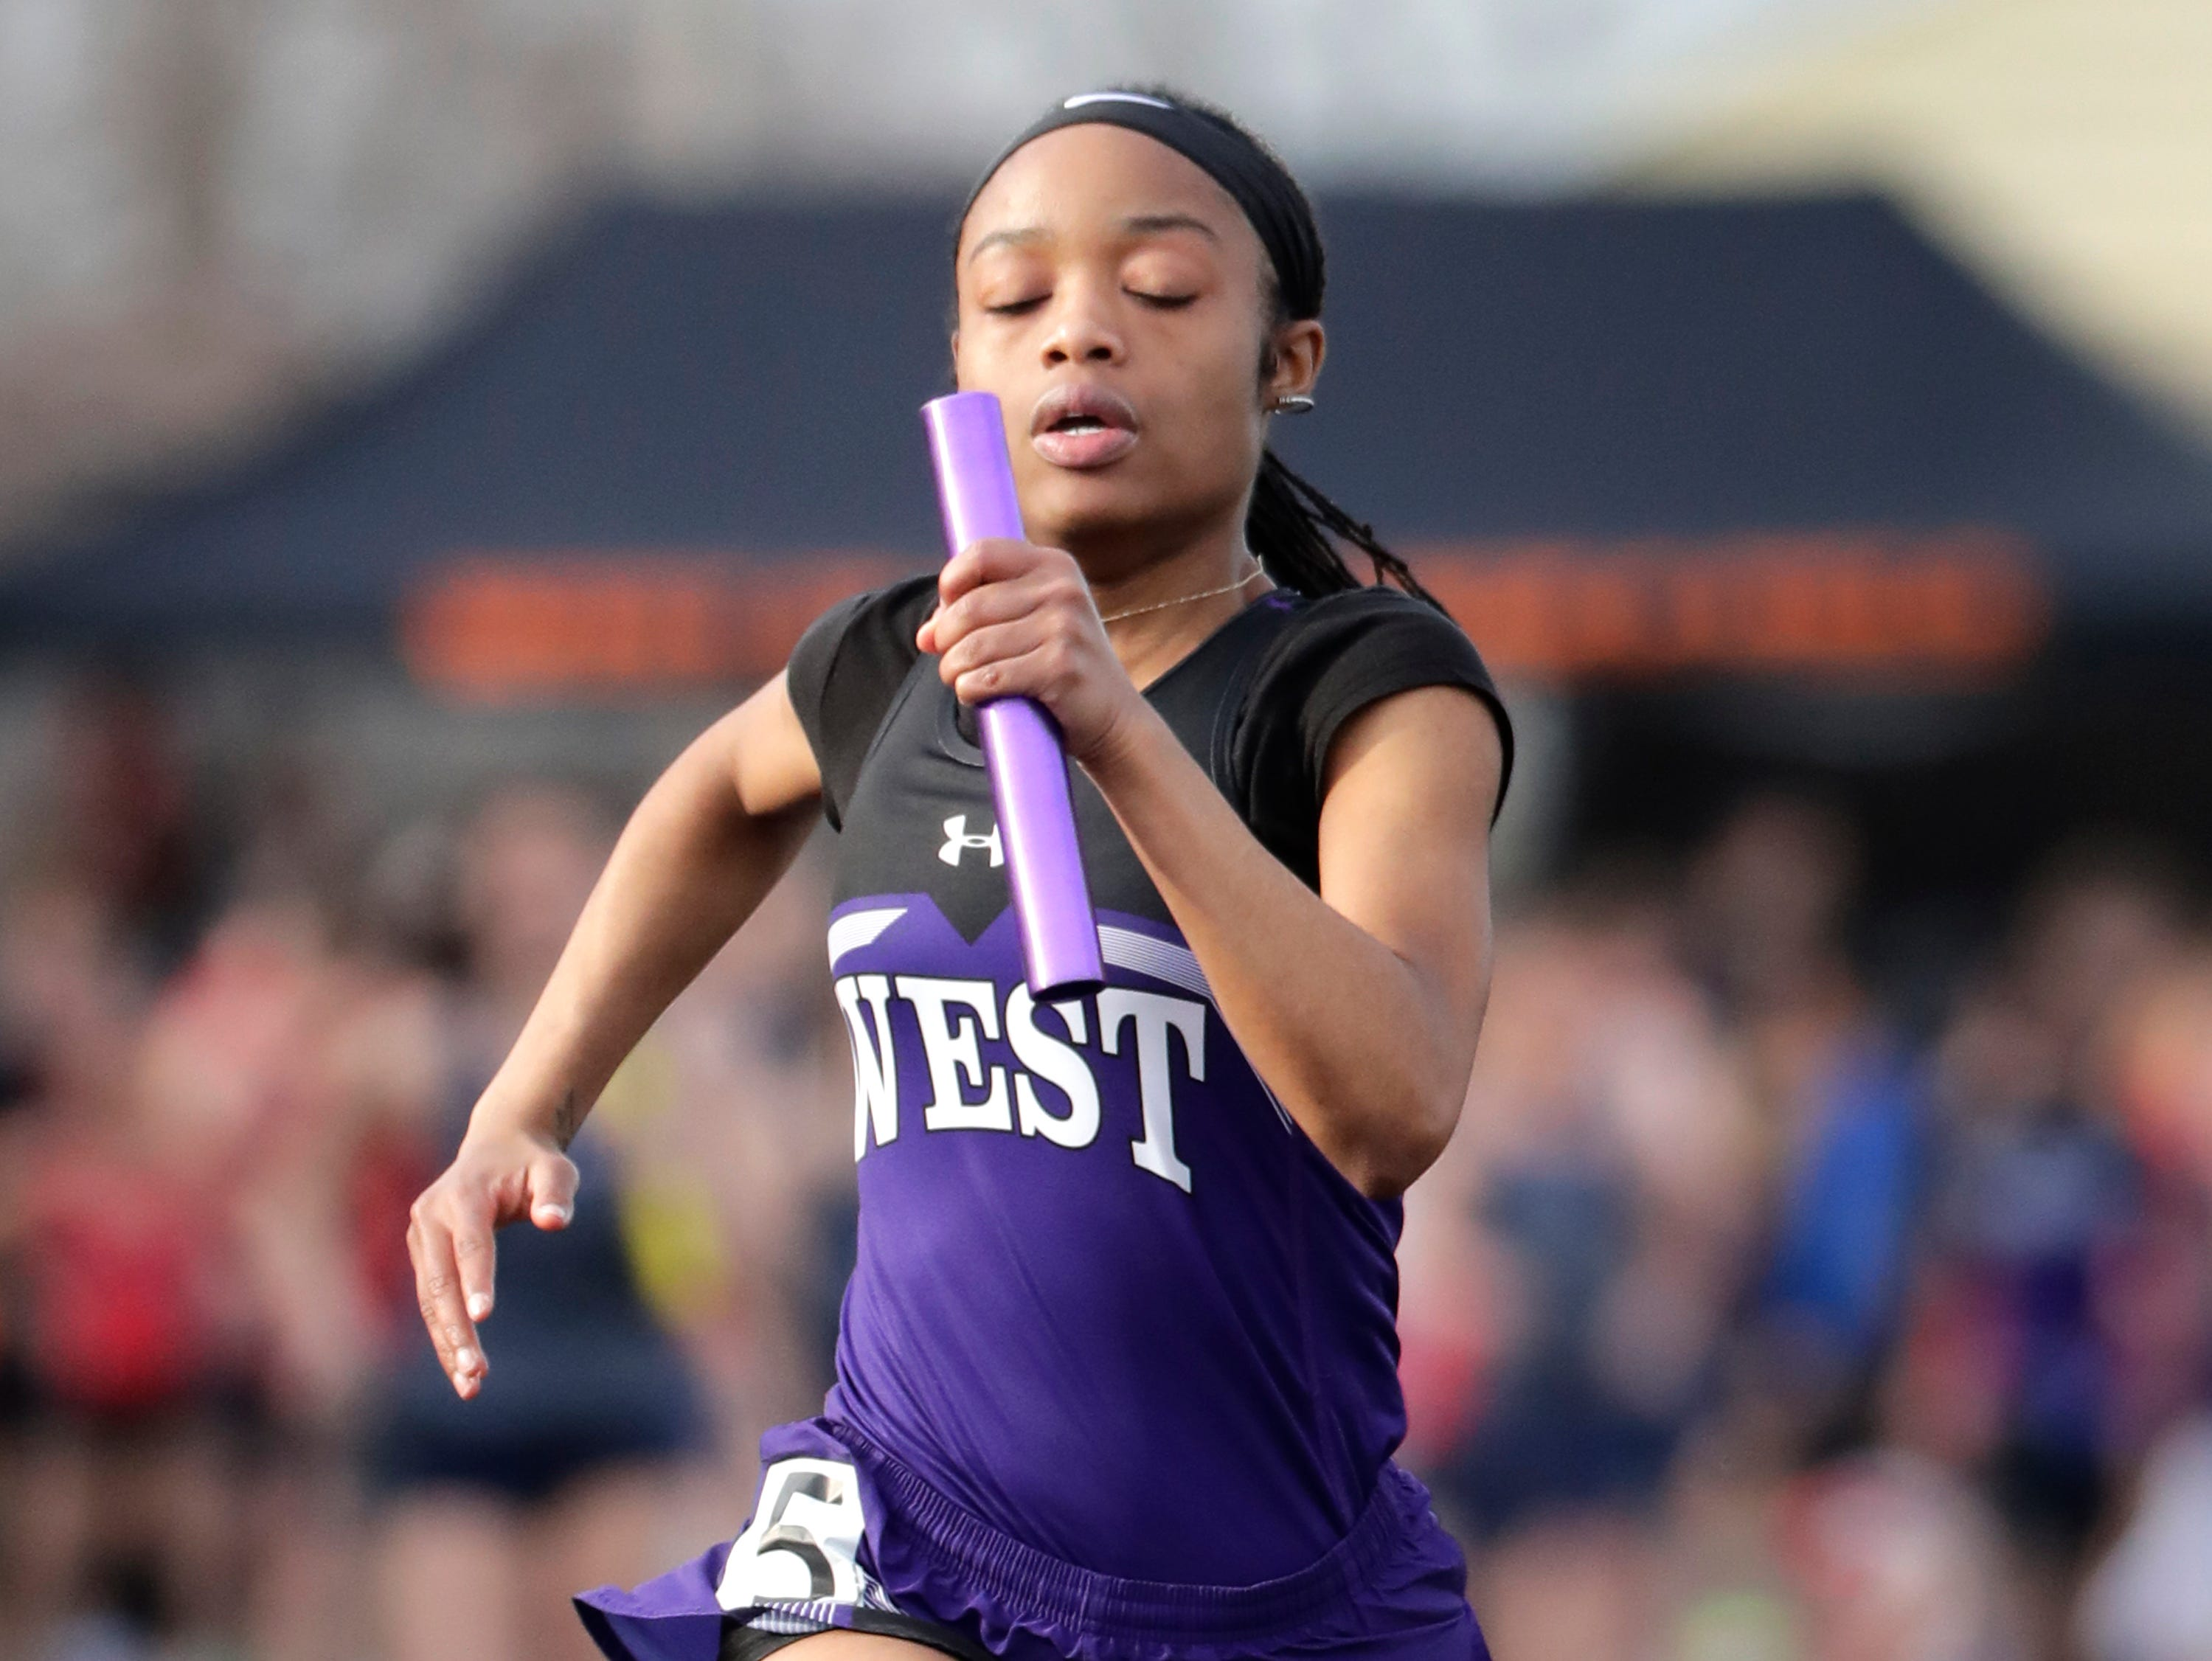 West De Pere High School's Zharia Wells competes in the 4 x 800m relay during a Bay Conference Relays track and field meet Tuesday, April 16, 2019 at Xavier High School, in Appleton, Wis. Wm. Glasheen/USA TODAY NETWORK-Wisconsin.